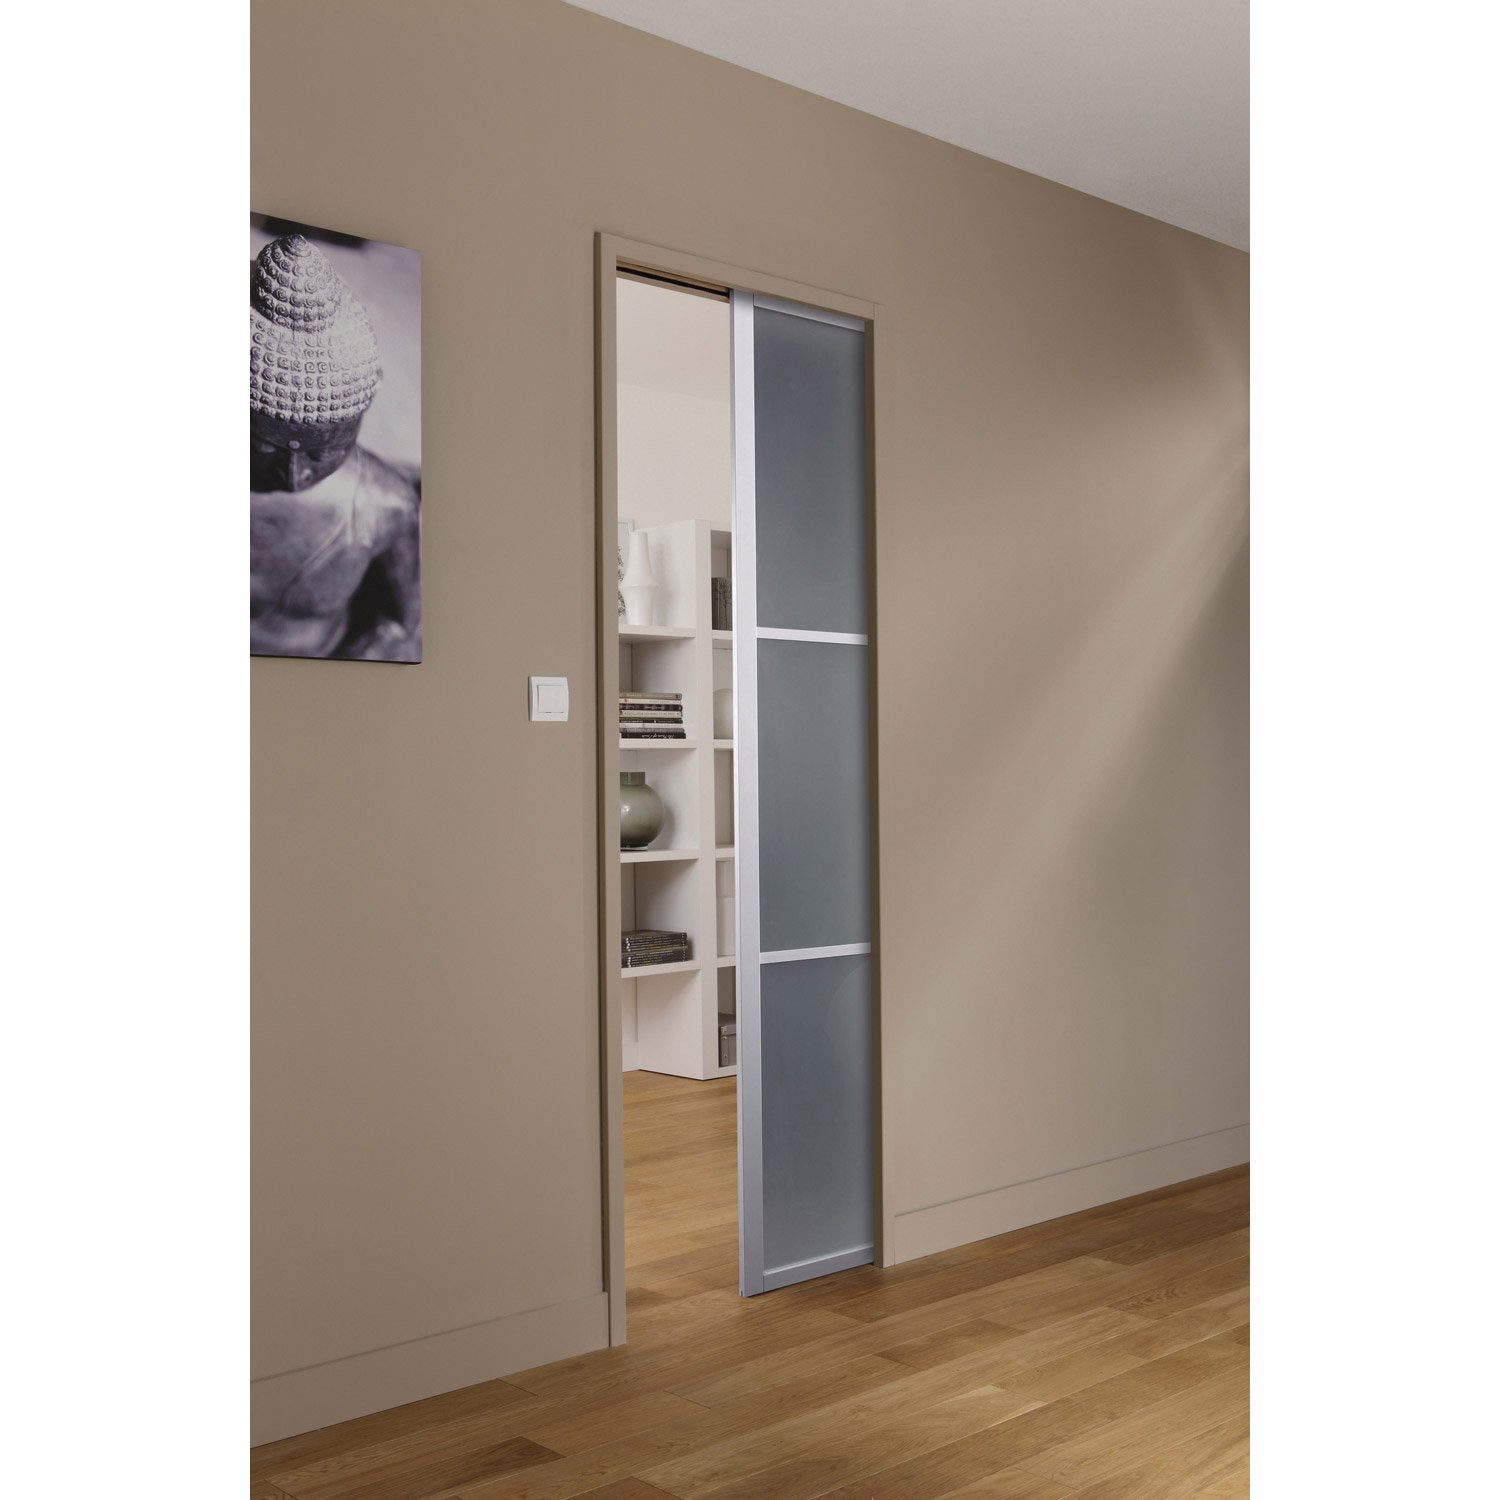 ensemble porte coulissante aspen aluminium avec galandage artens 2 en aluminium leroy merlin. Black Bedroom Furniture Sets. Home Design Ideas